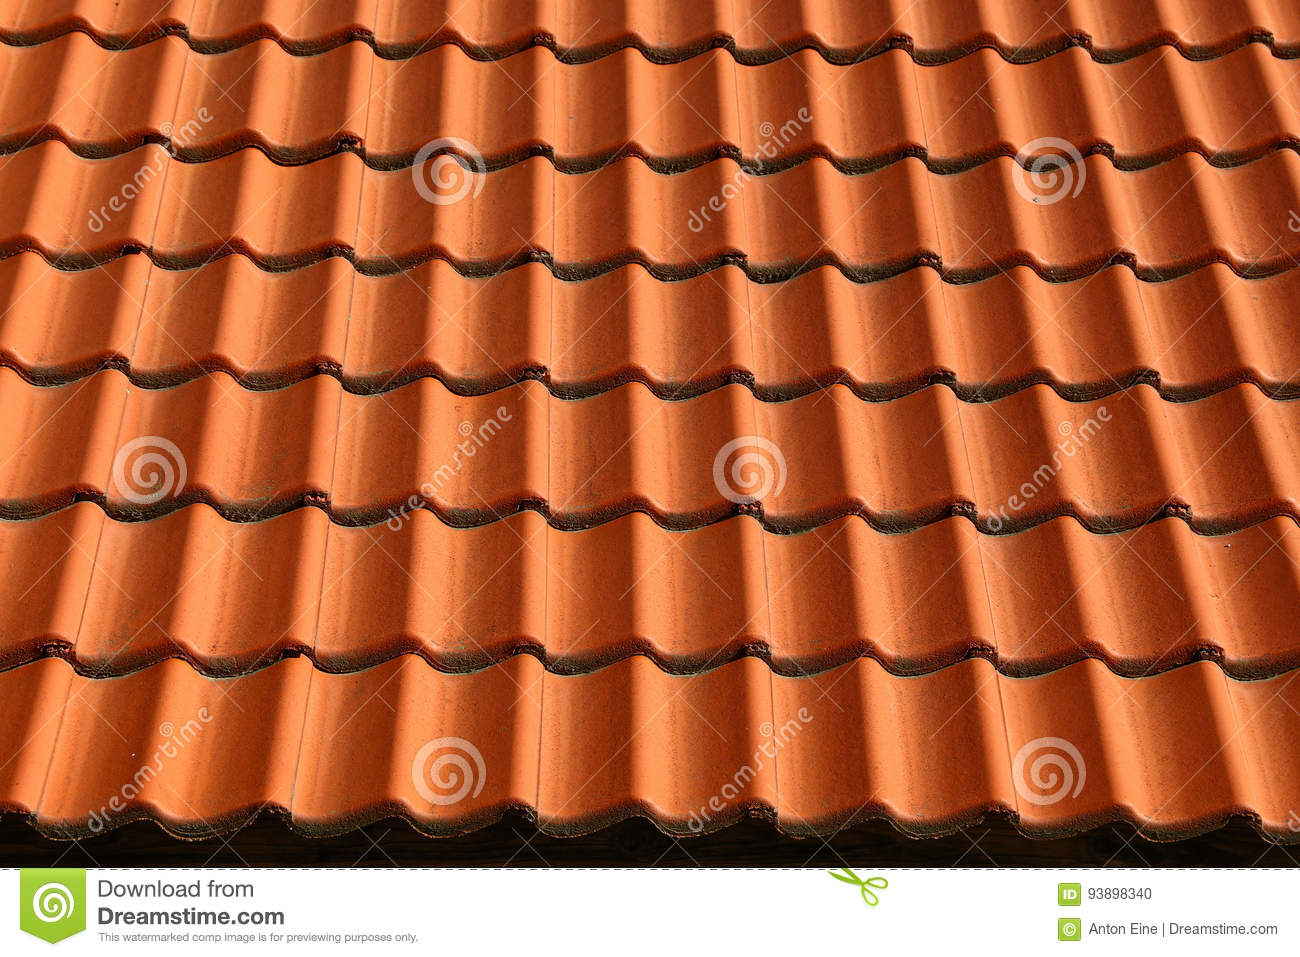 Red brown ceramic roof tiles pattern background stock photo image red brown ceramic roof tiles pattern background dailygadgetfo Image collections